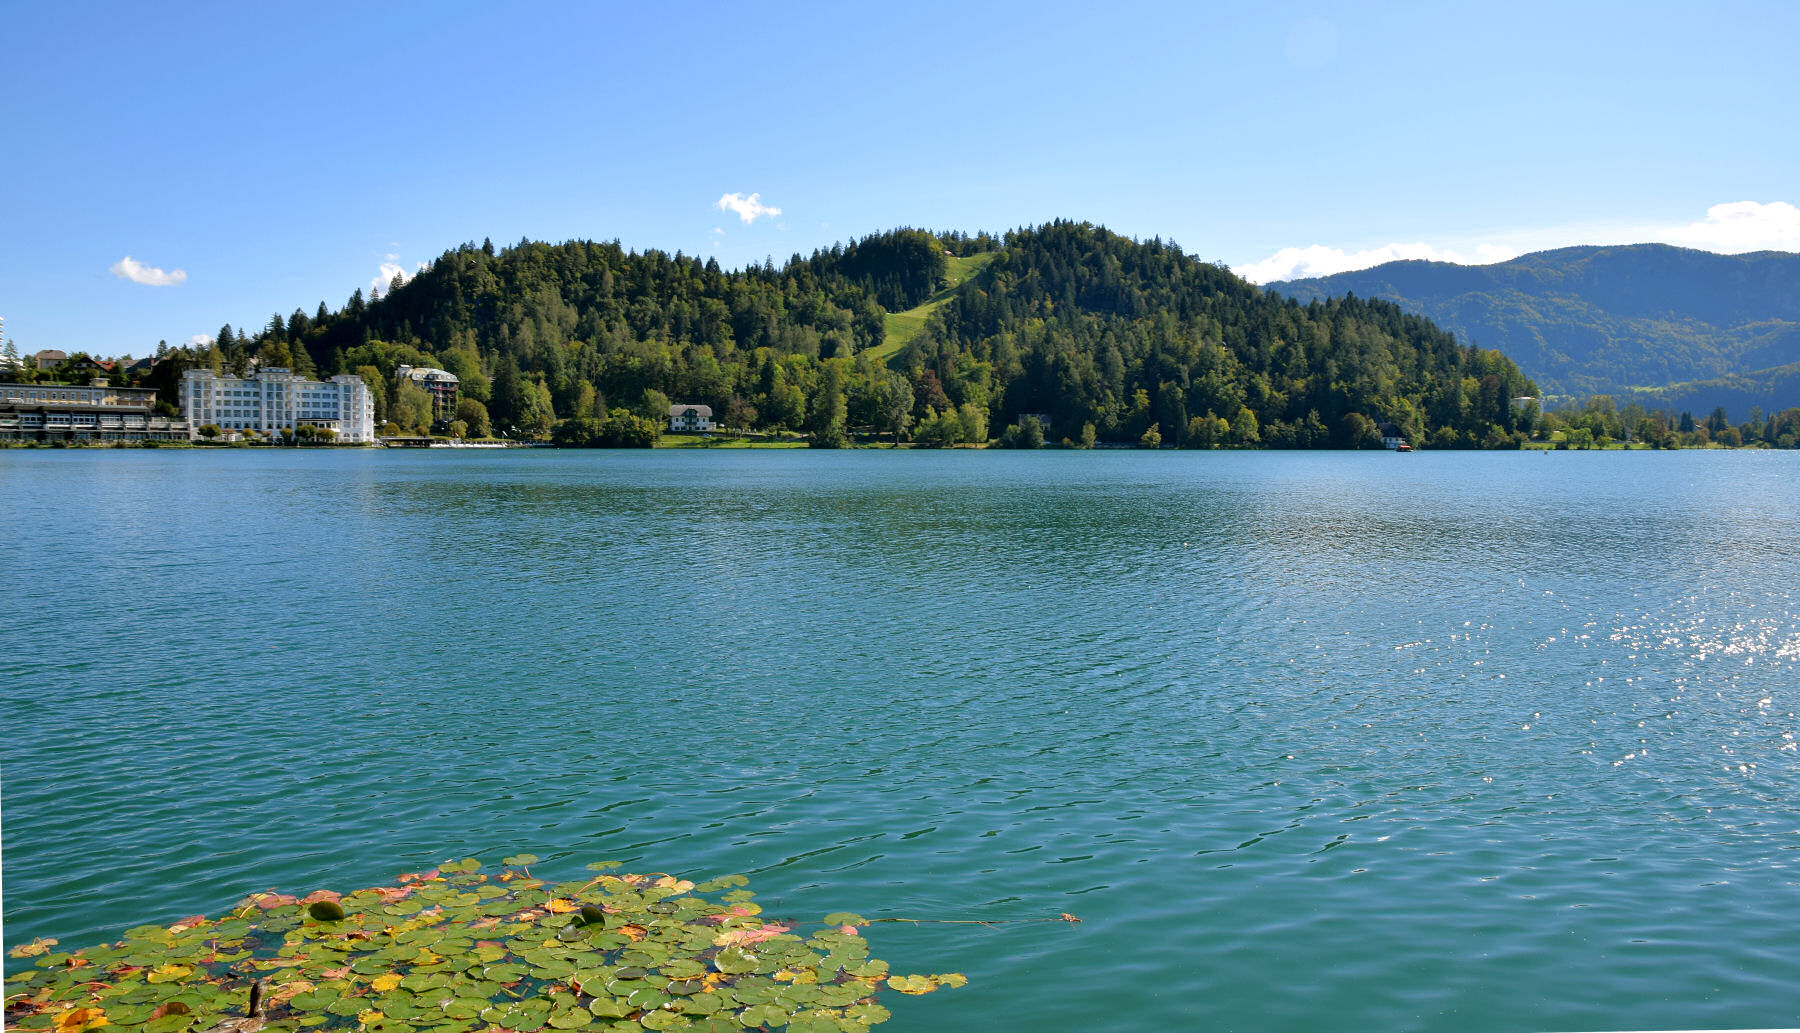 straza-hill-02-from-lake-bled